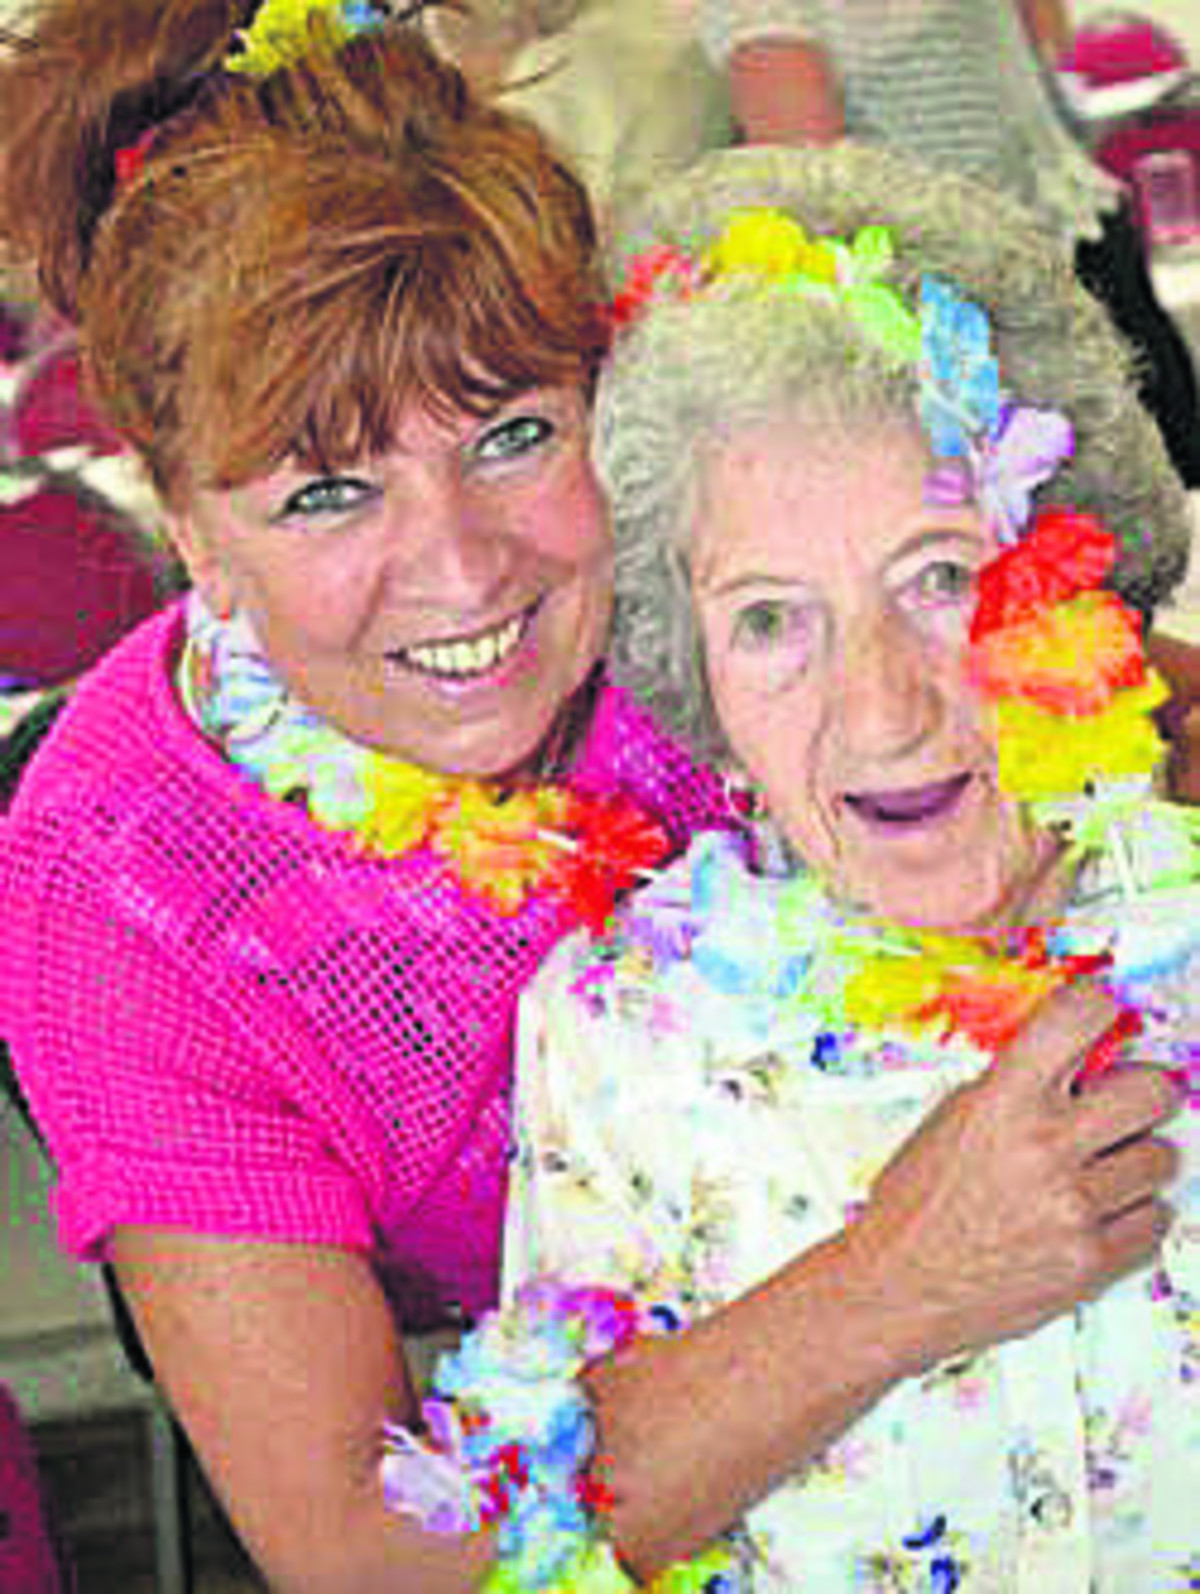 The Orders of St John Care Trust's care homes across Wiltshire will host social events and activities on February 1